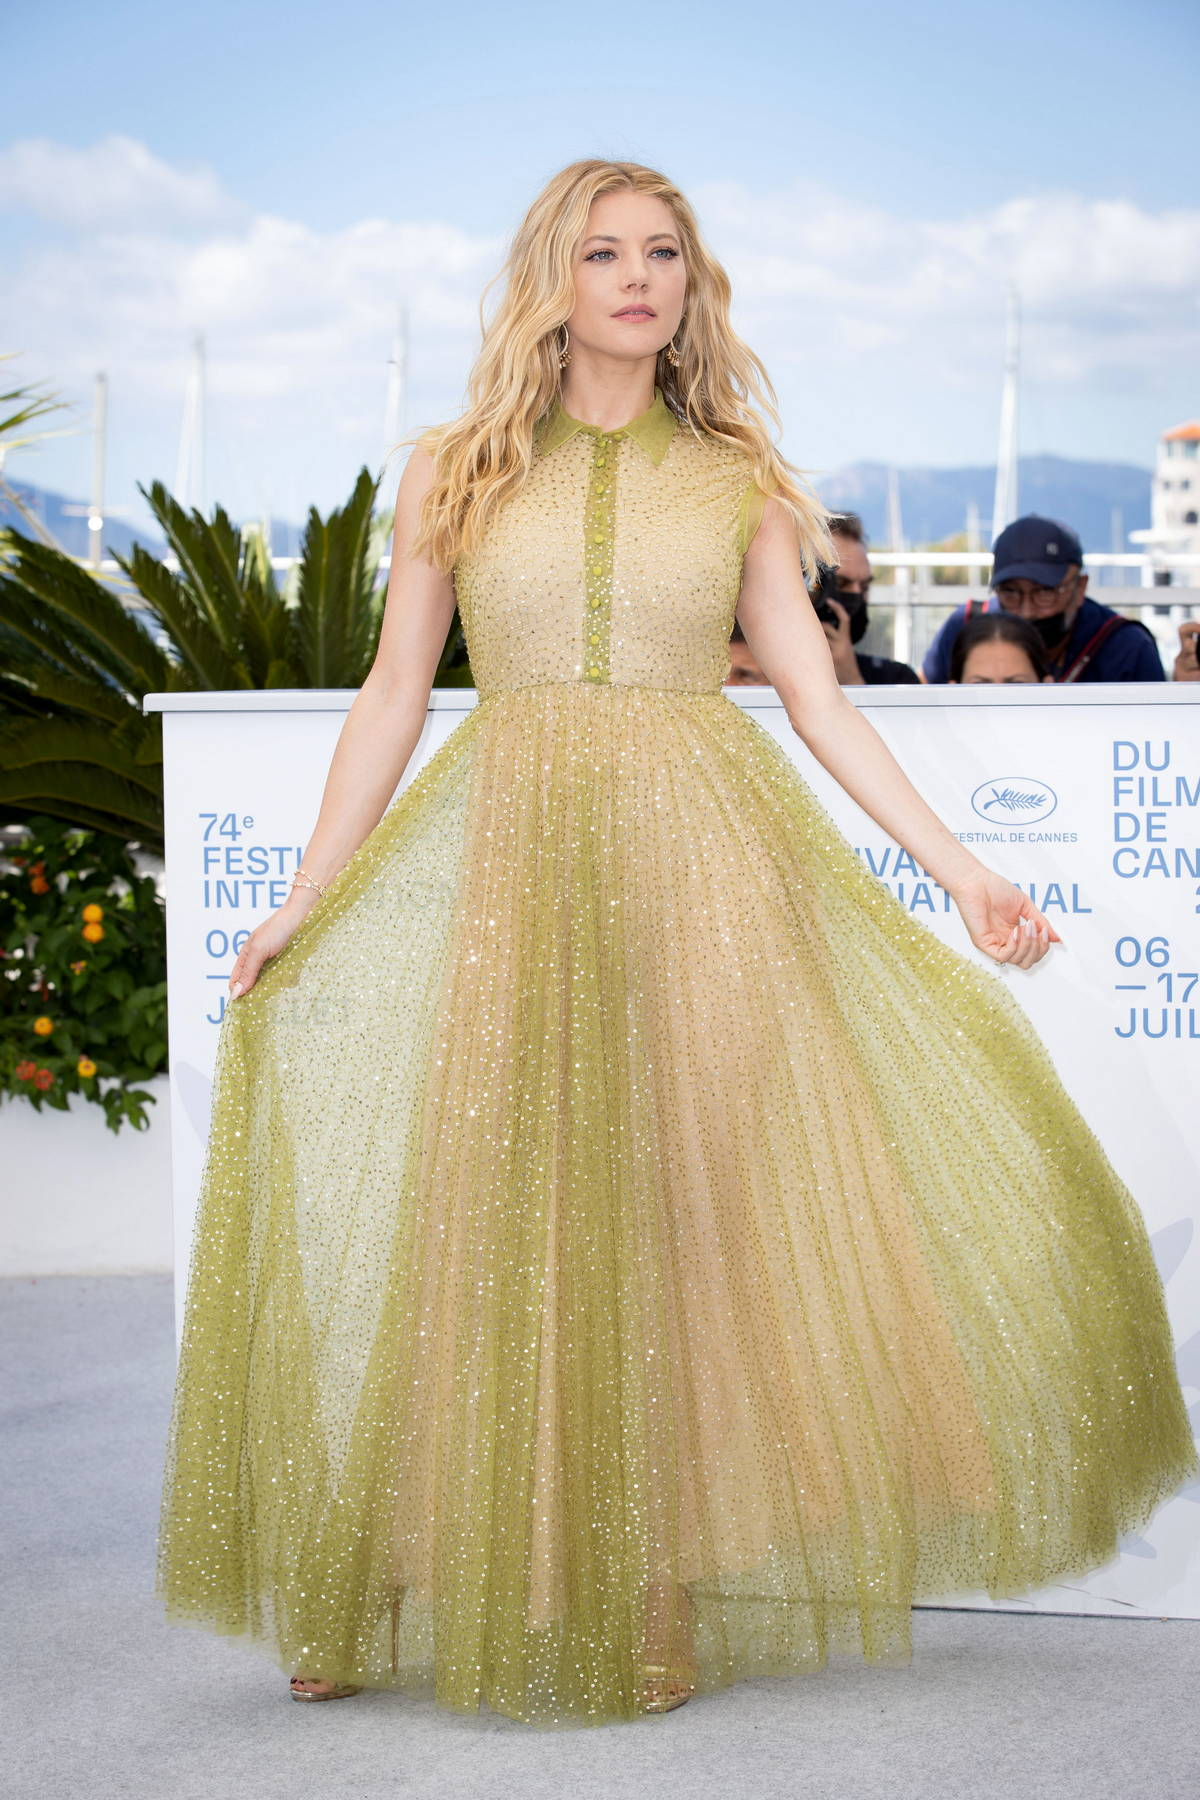 Katheryn Winnick attends the 'Flag Day' photocall during the 74th annual Cannes Film Festival in Cannes, France